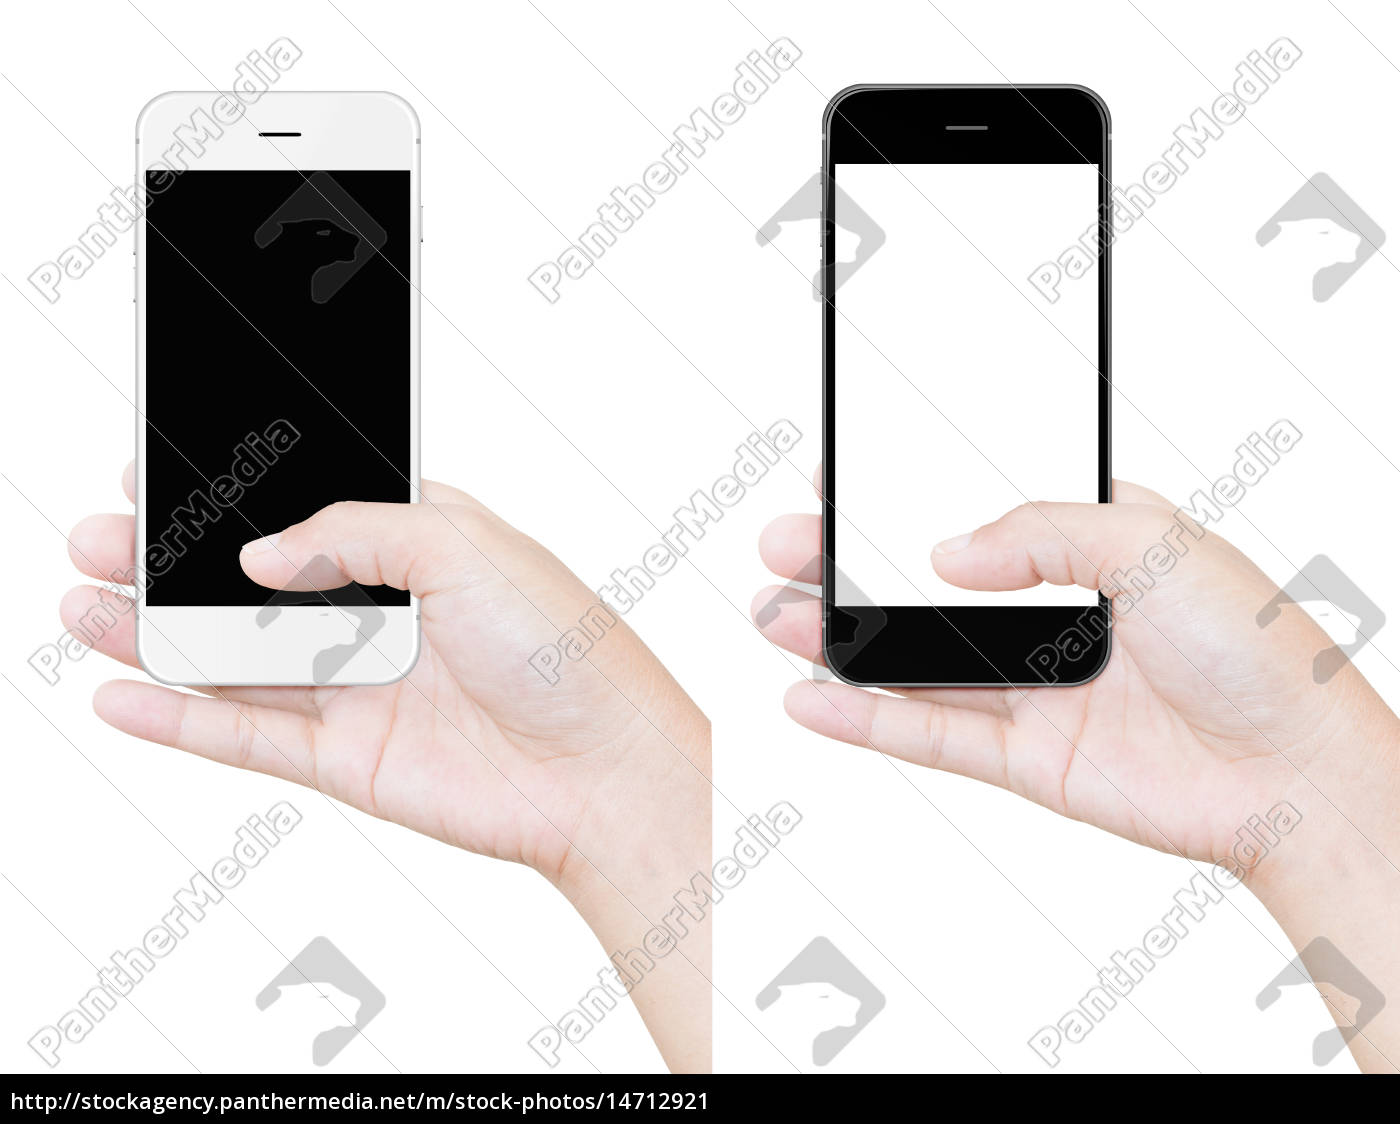 hand, holding, phone, clipping, path, isolated - 14712921